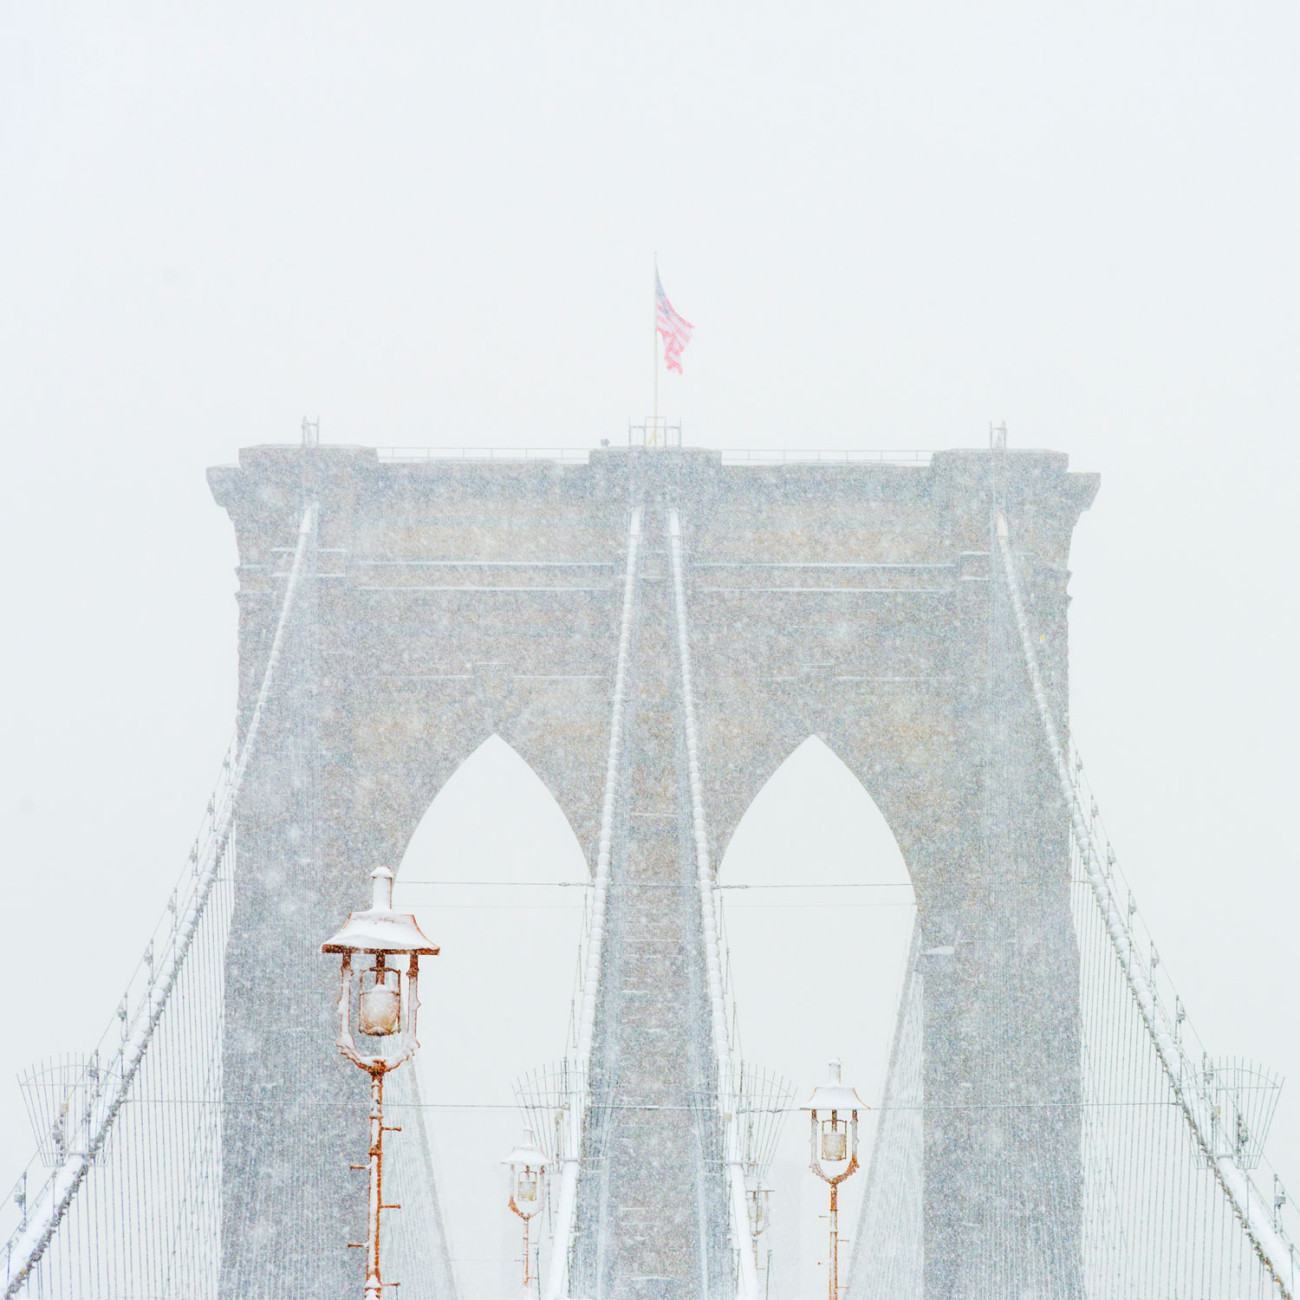 Tower of the Brooklyn Bridge in snow, NY, 2013